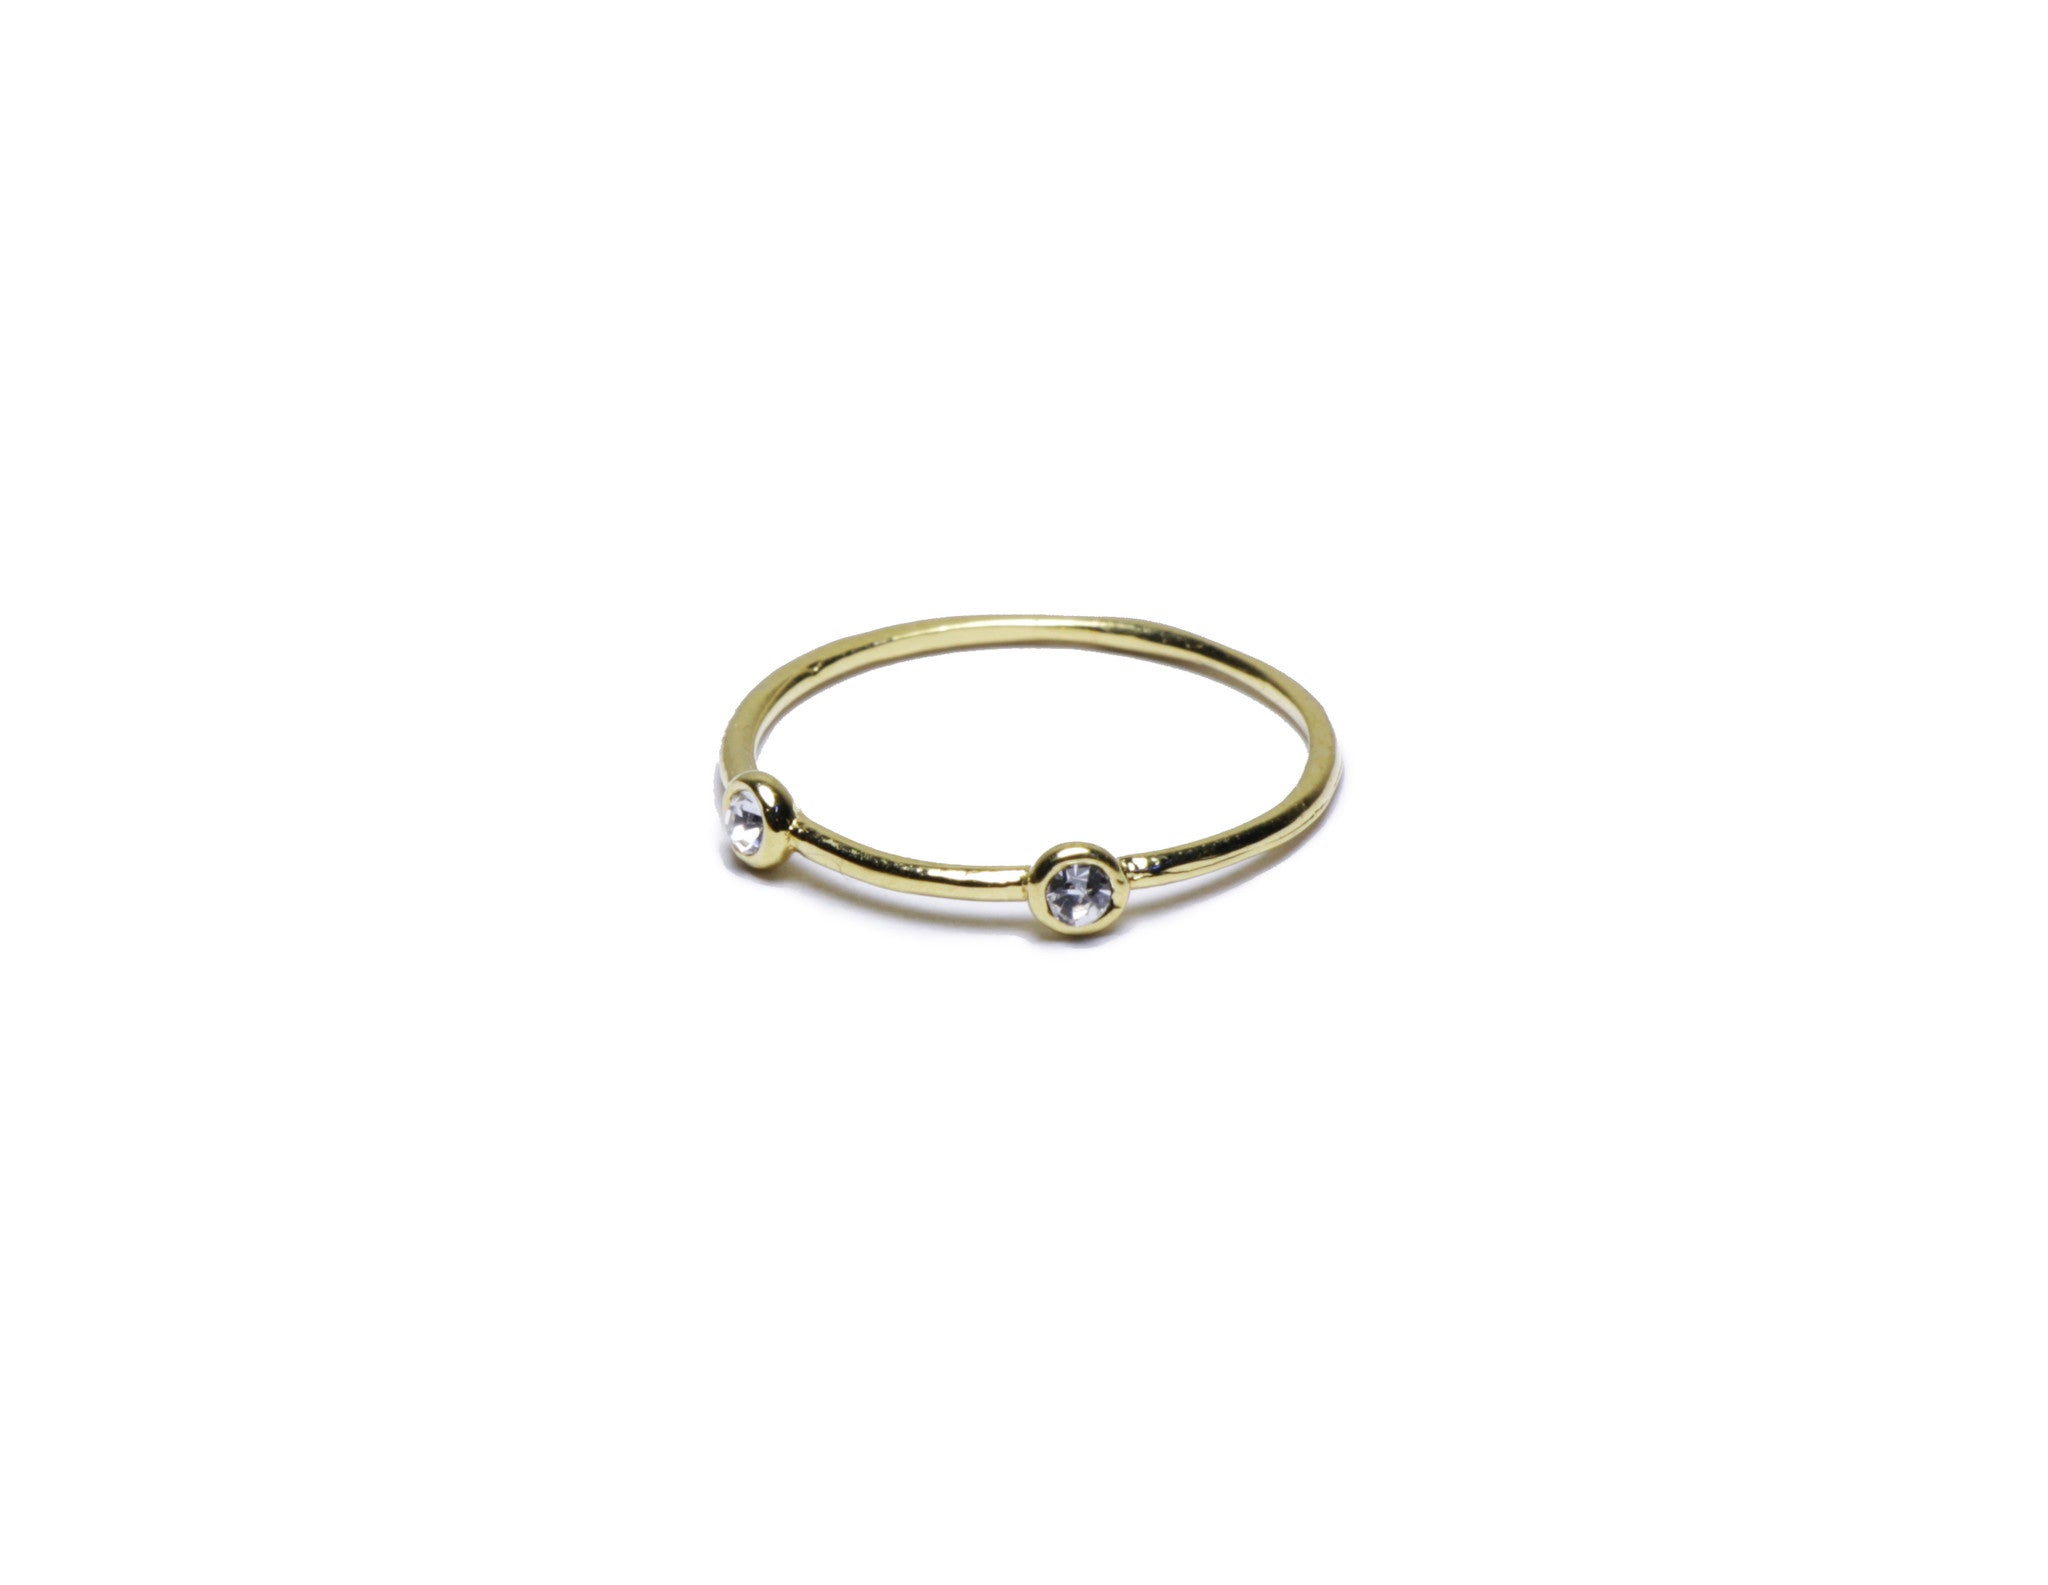 Pueblo Jewelry - Minimal gold ring